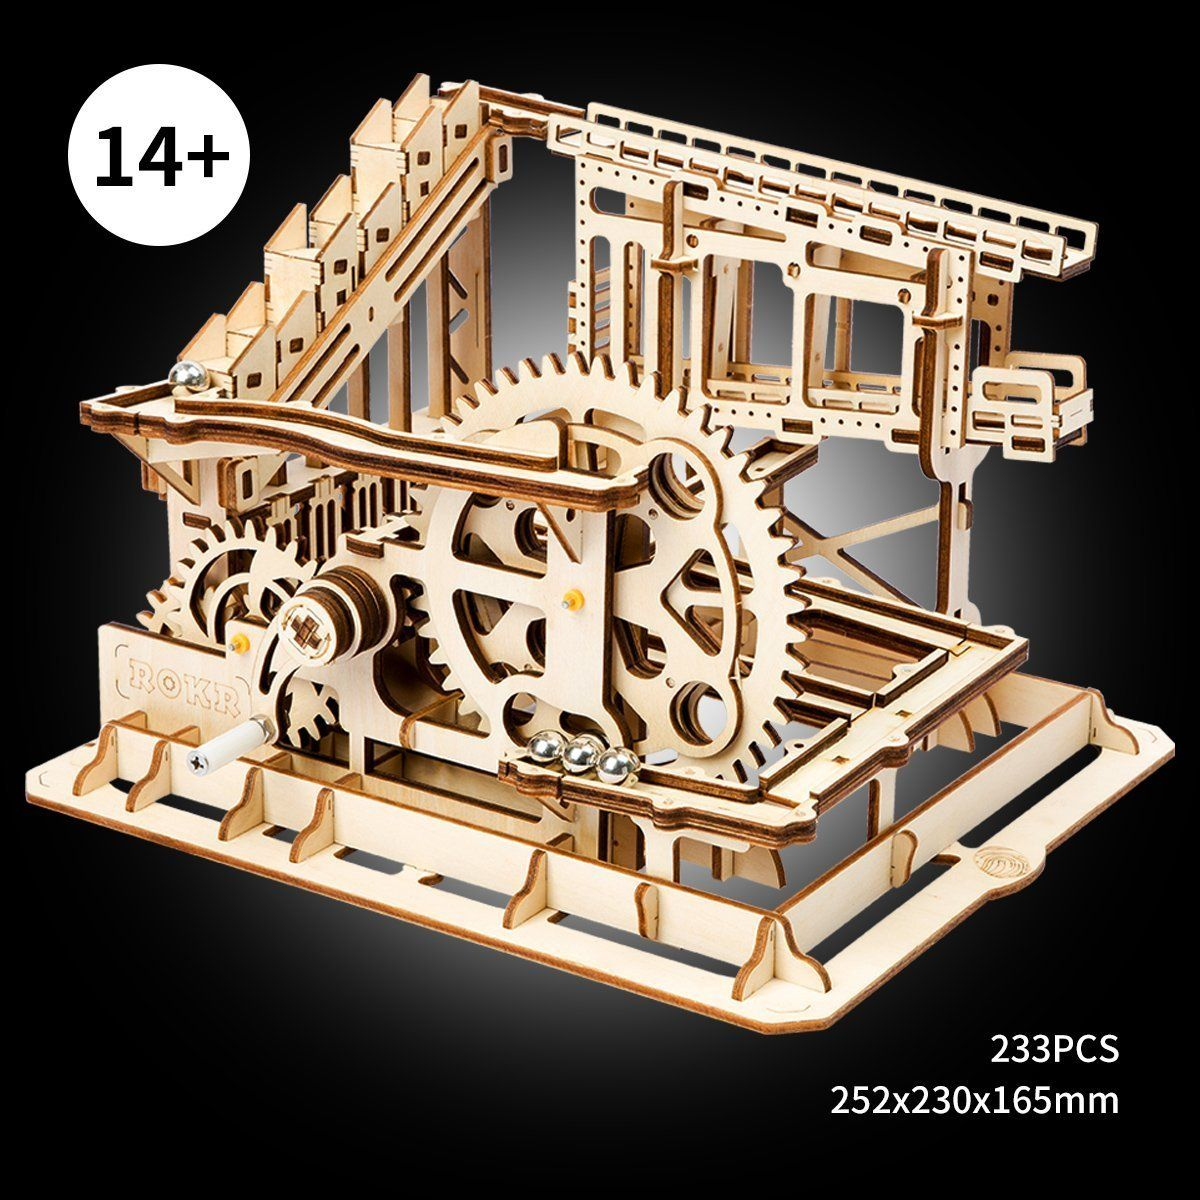 ROBOTIME 3D Puzzle Engineering Toys STEM Learning Kits Wooden Laser-Cut Model Kit Best Mechanical Gears Toy Gifts for Adults /& Teens